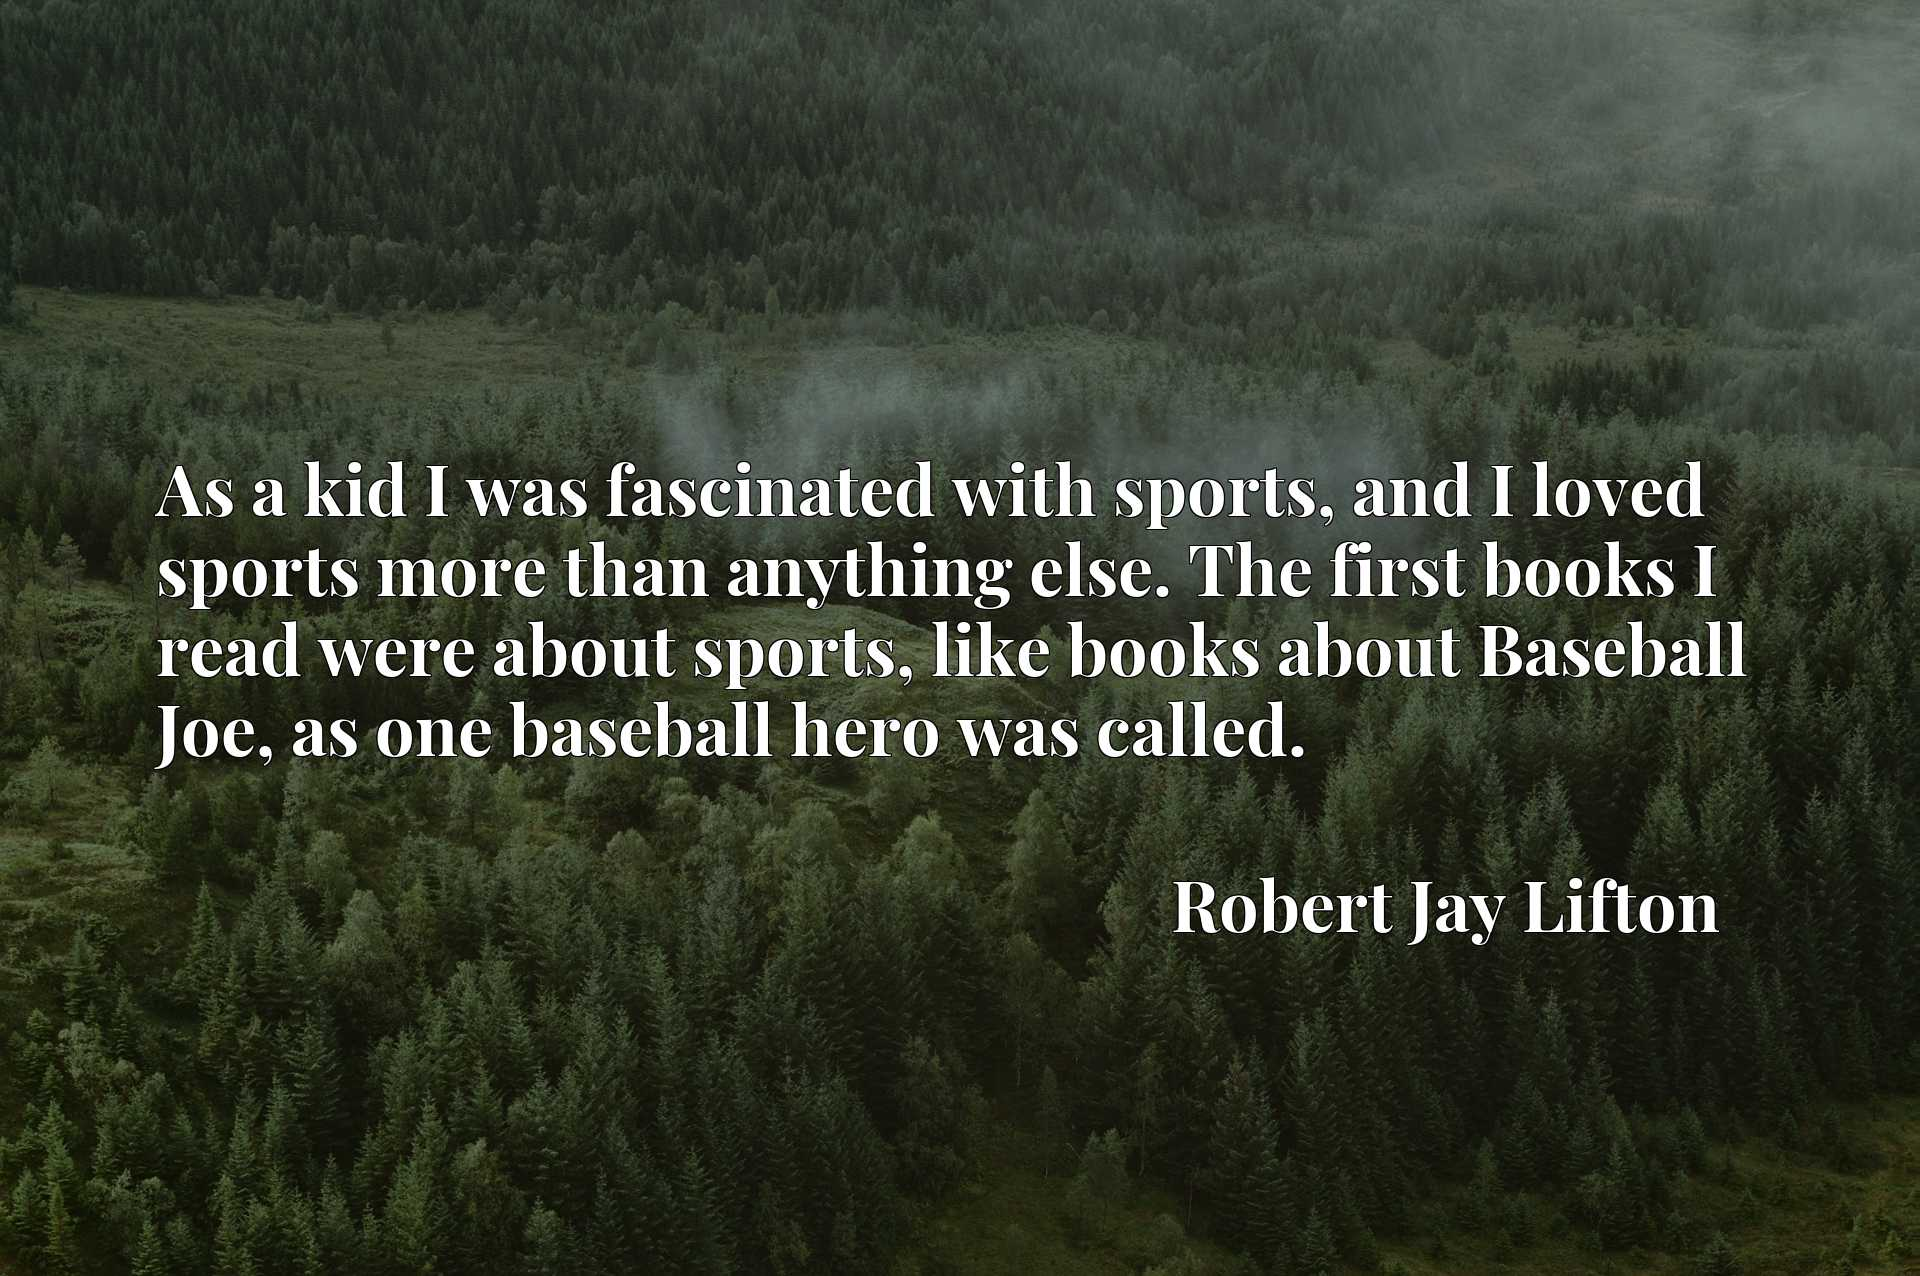 As a kid I was fascinated with sports, and I loved sports more than anything else. The first books I read were about sports, like books about Baseball Joe, as one baseball hero was called.